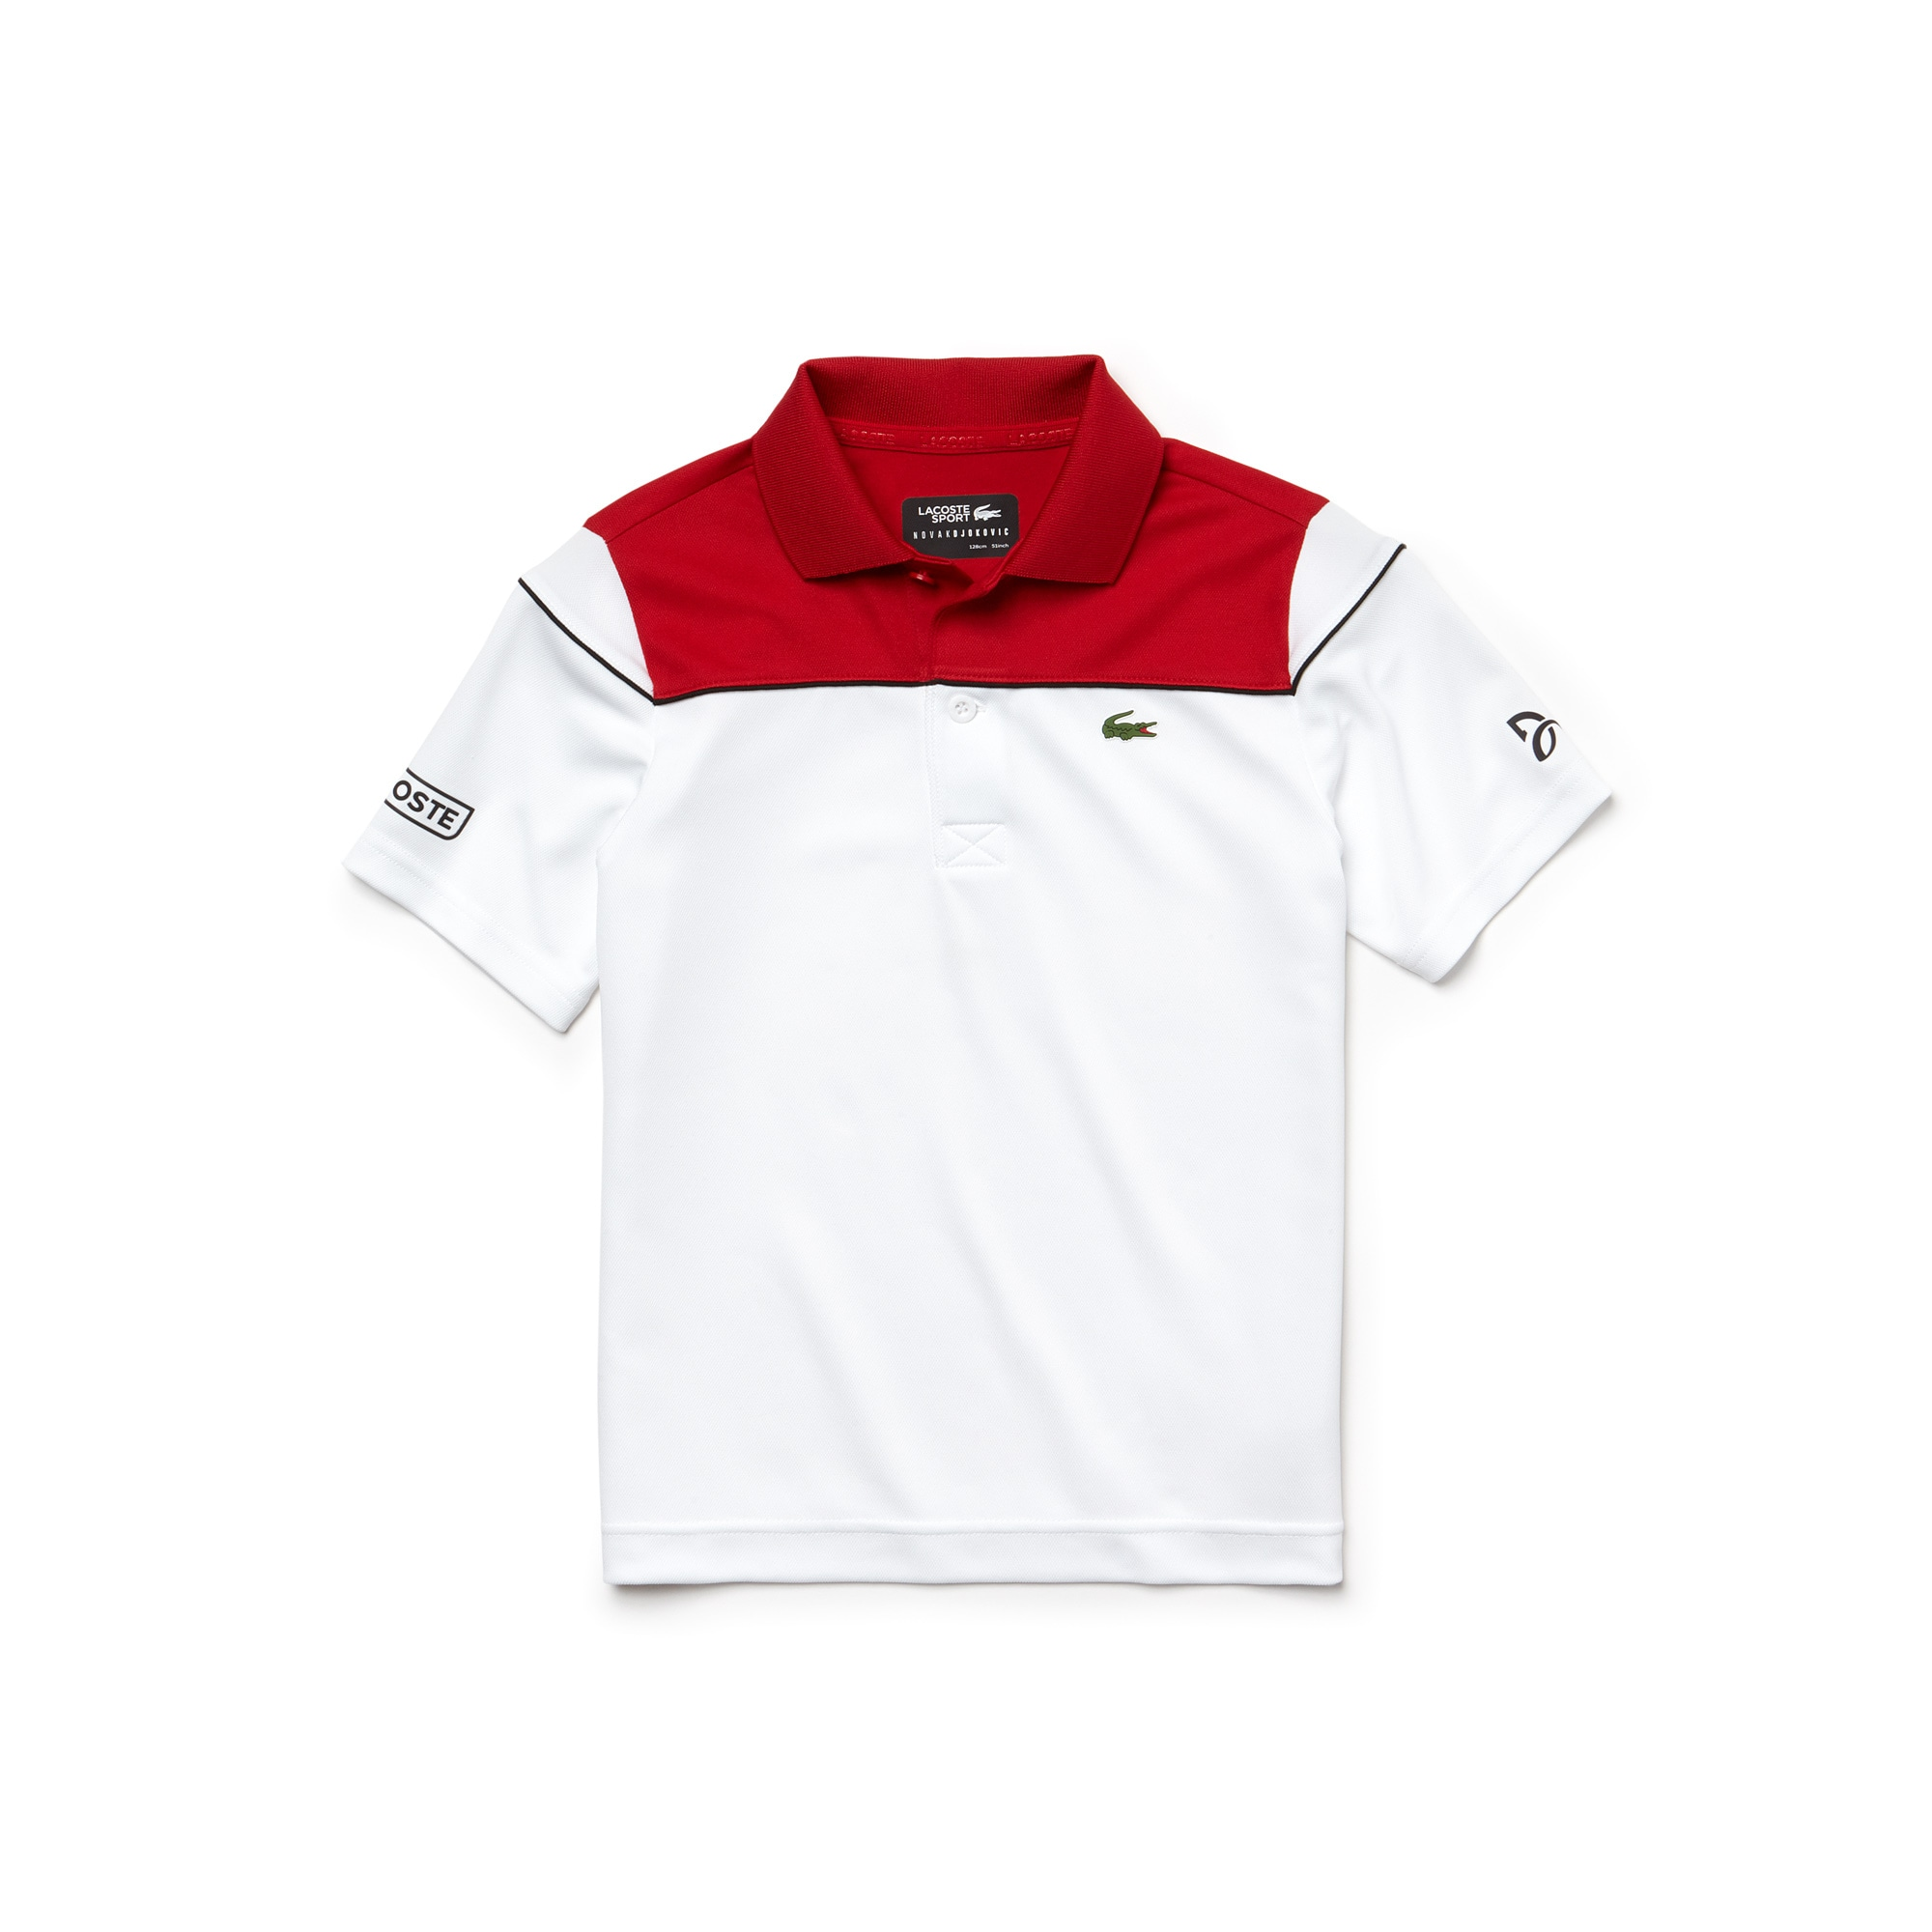 Polo Garçon LACOSTE SPORT COLLECTION NOVAK DJOKOVIC en piqué technique color block